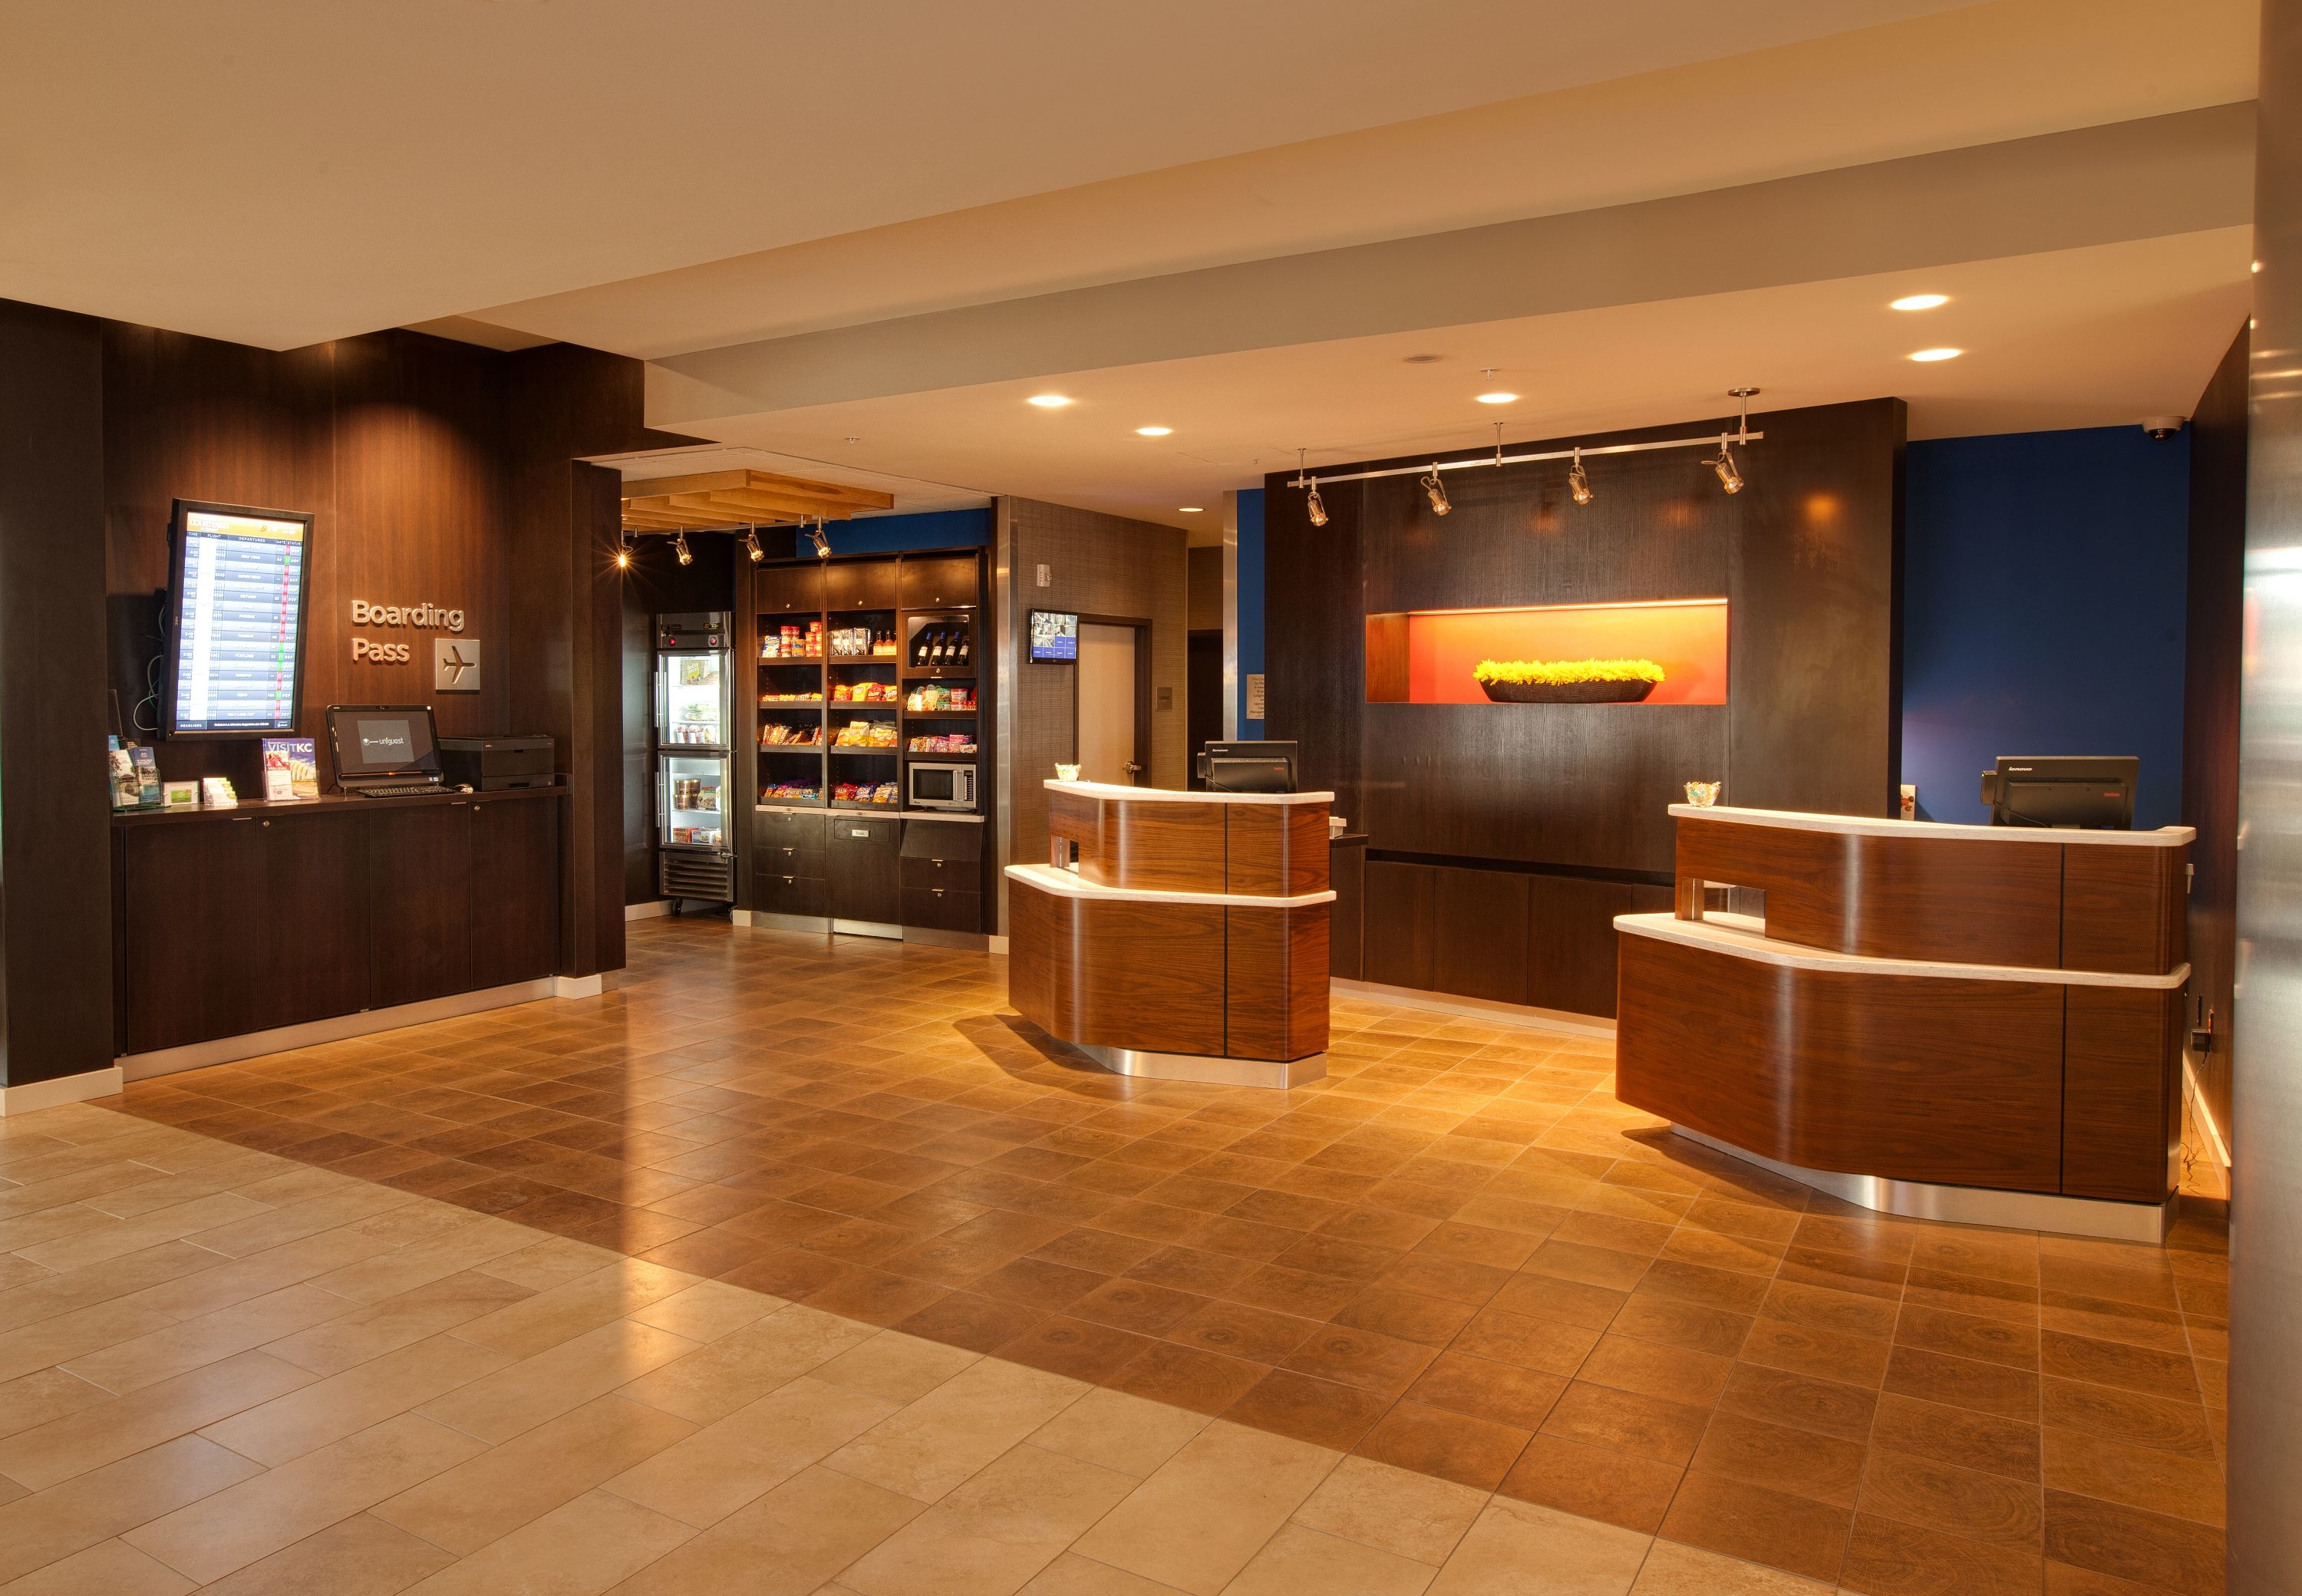 Courtyard by Marriott Kansas City at Briarcliff image 7